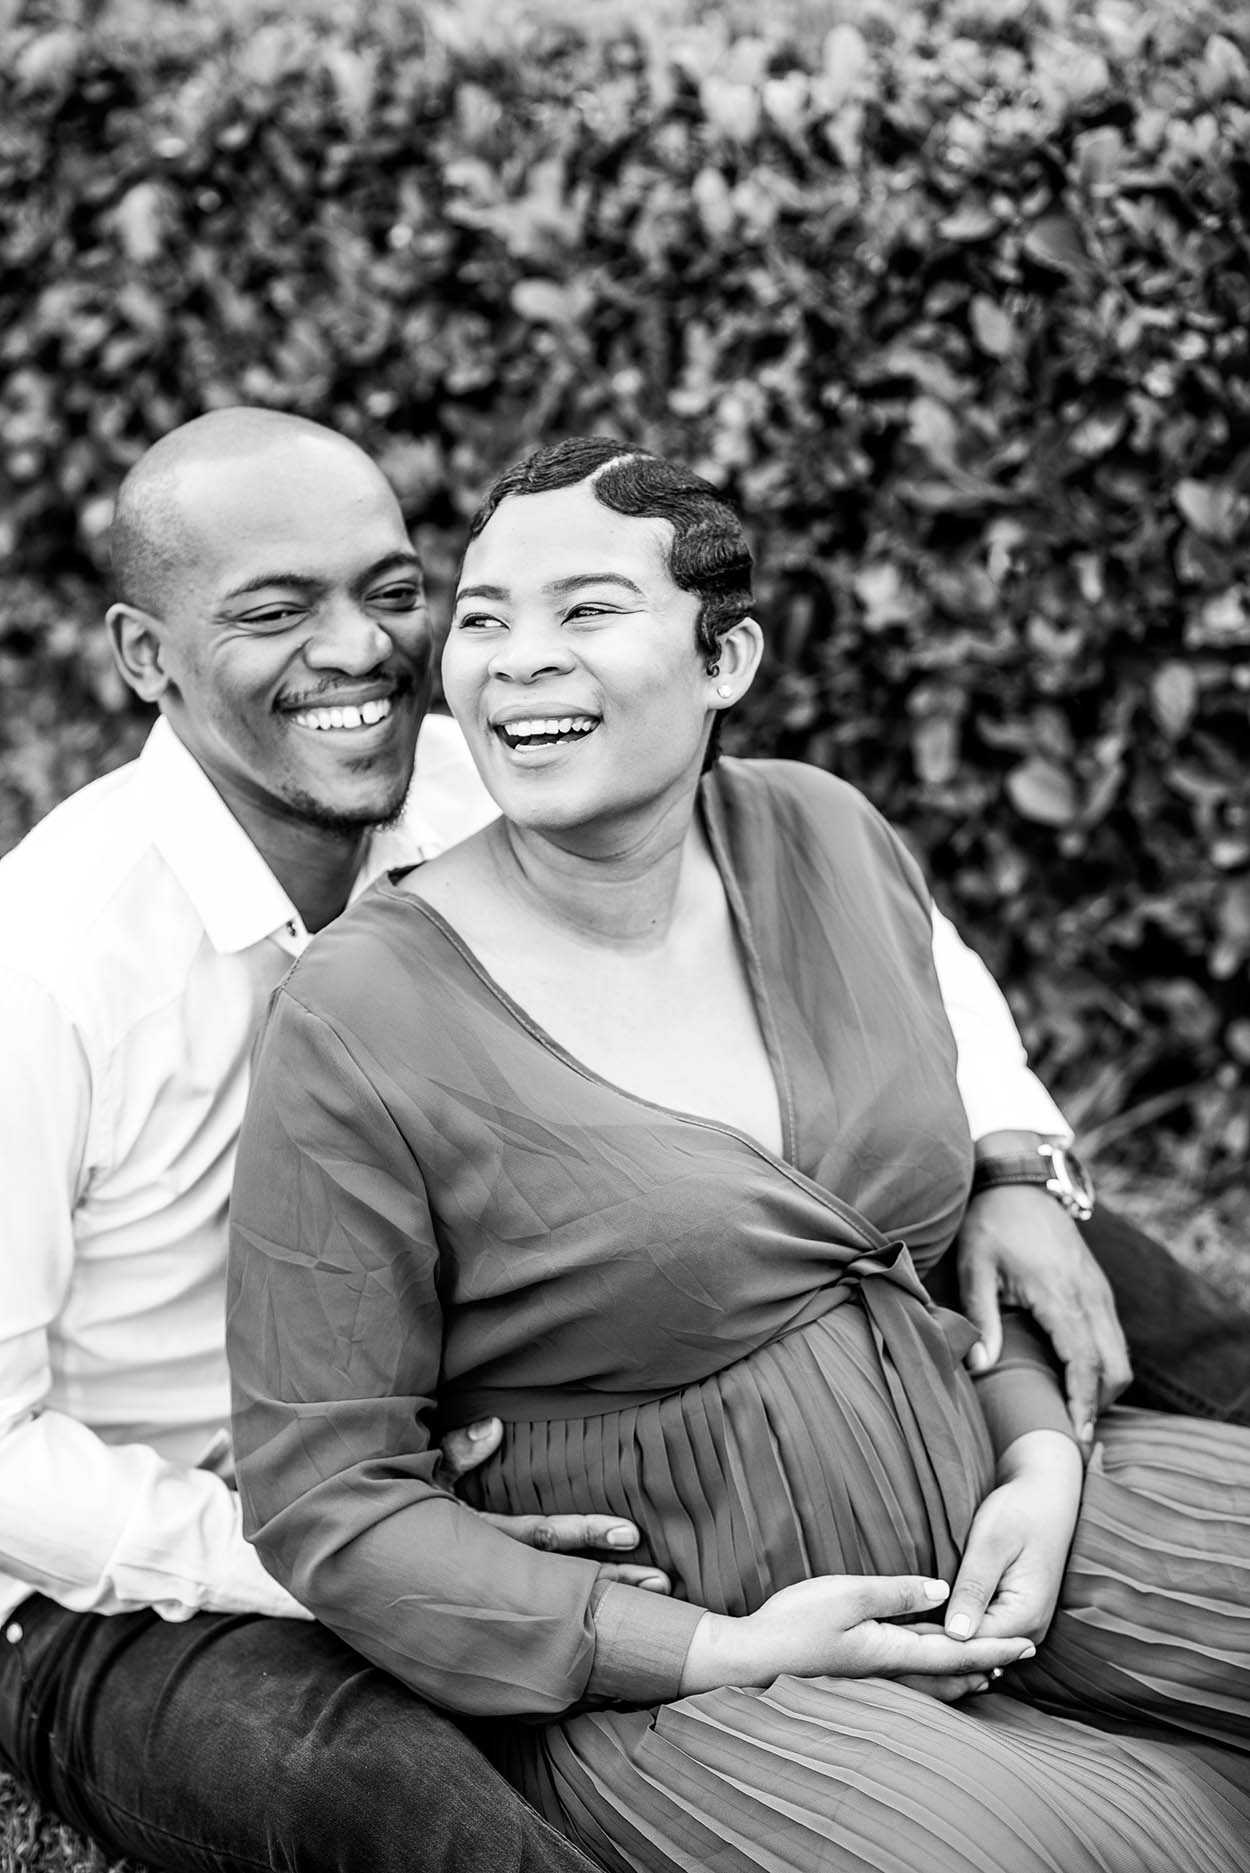 Maternity photo by Mudboots taken at Tuscan Rose in Bloemfontein